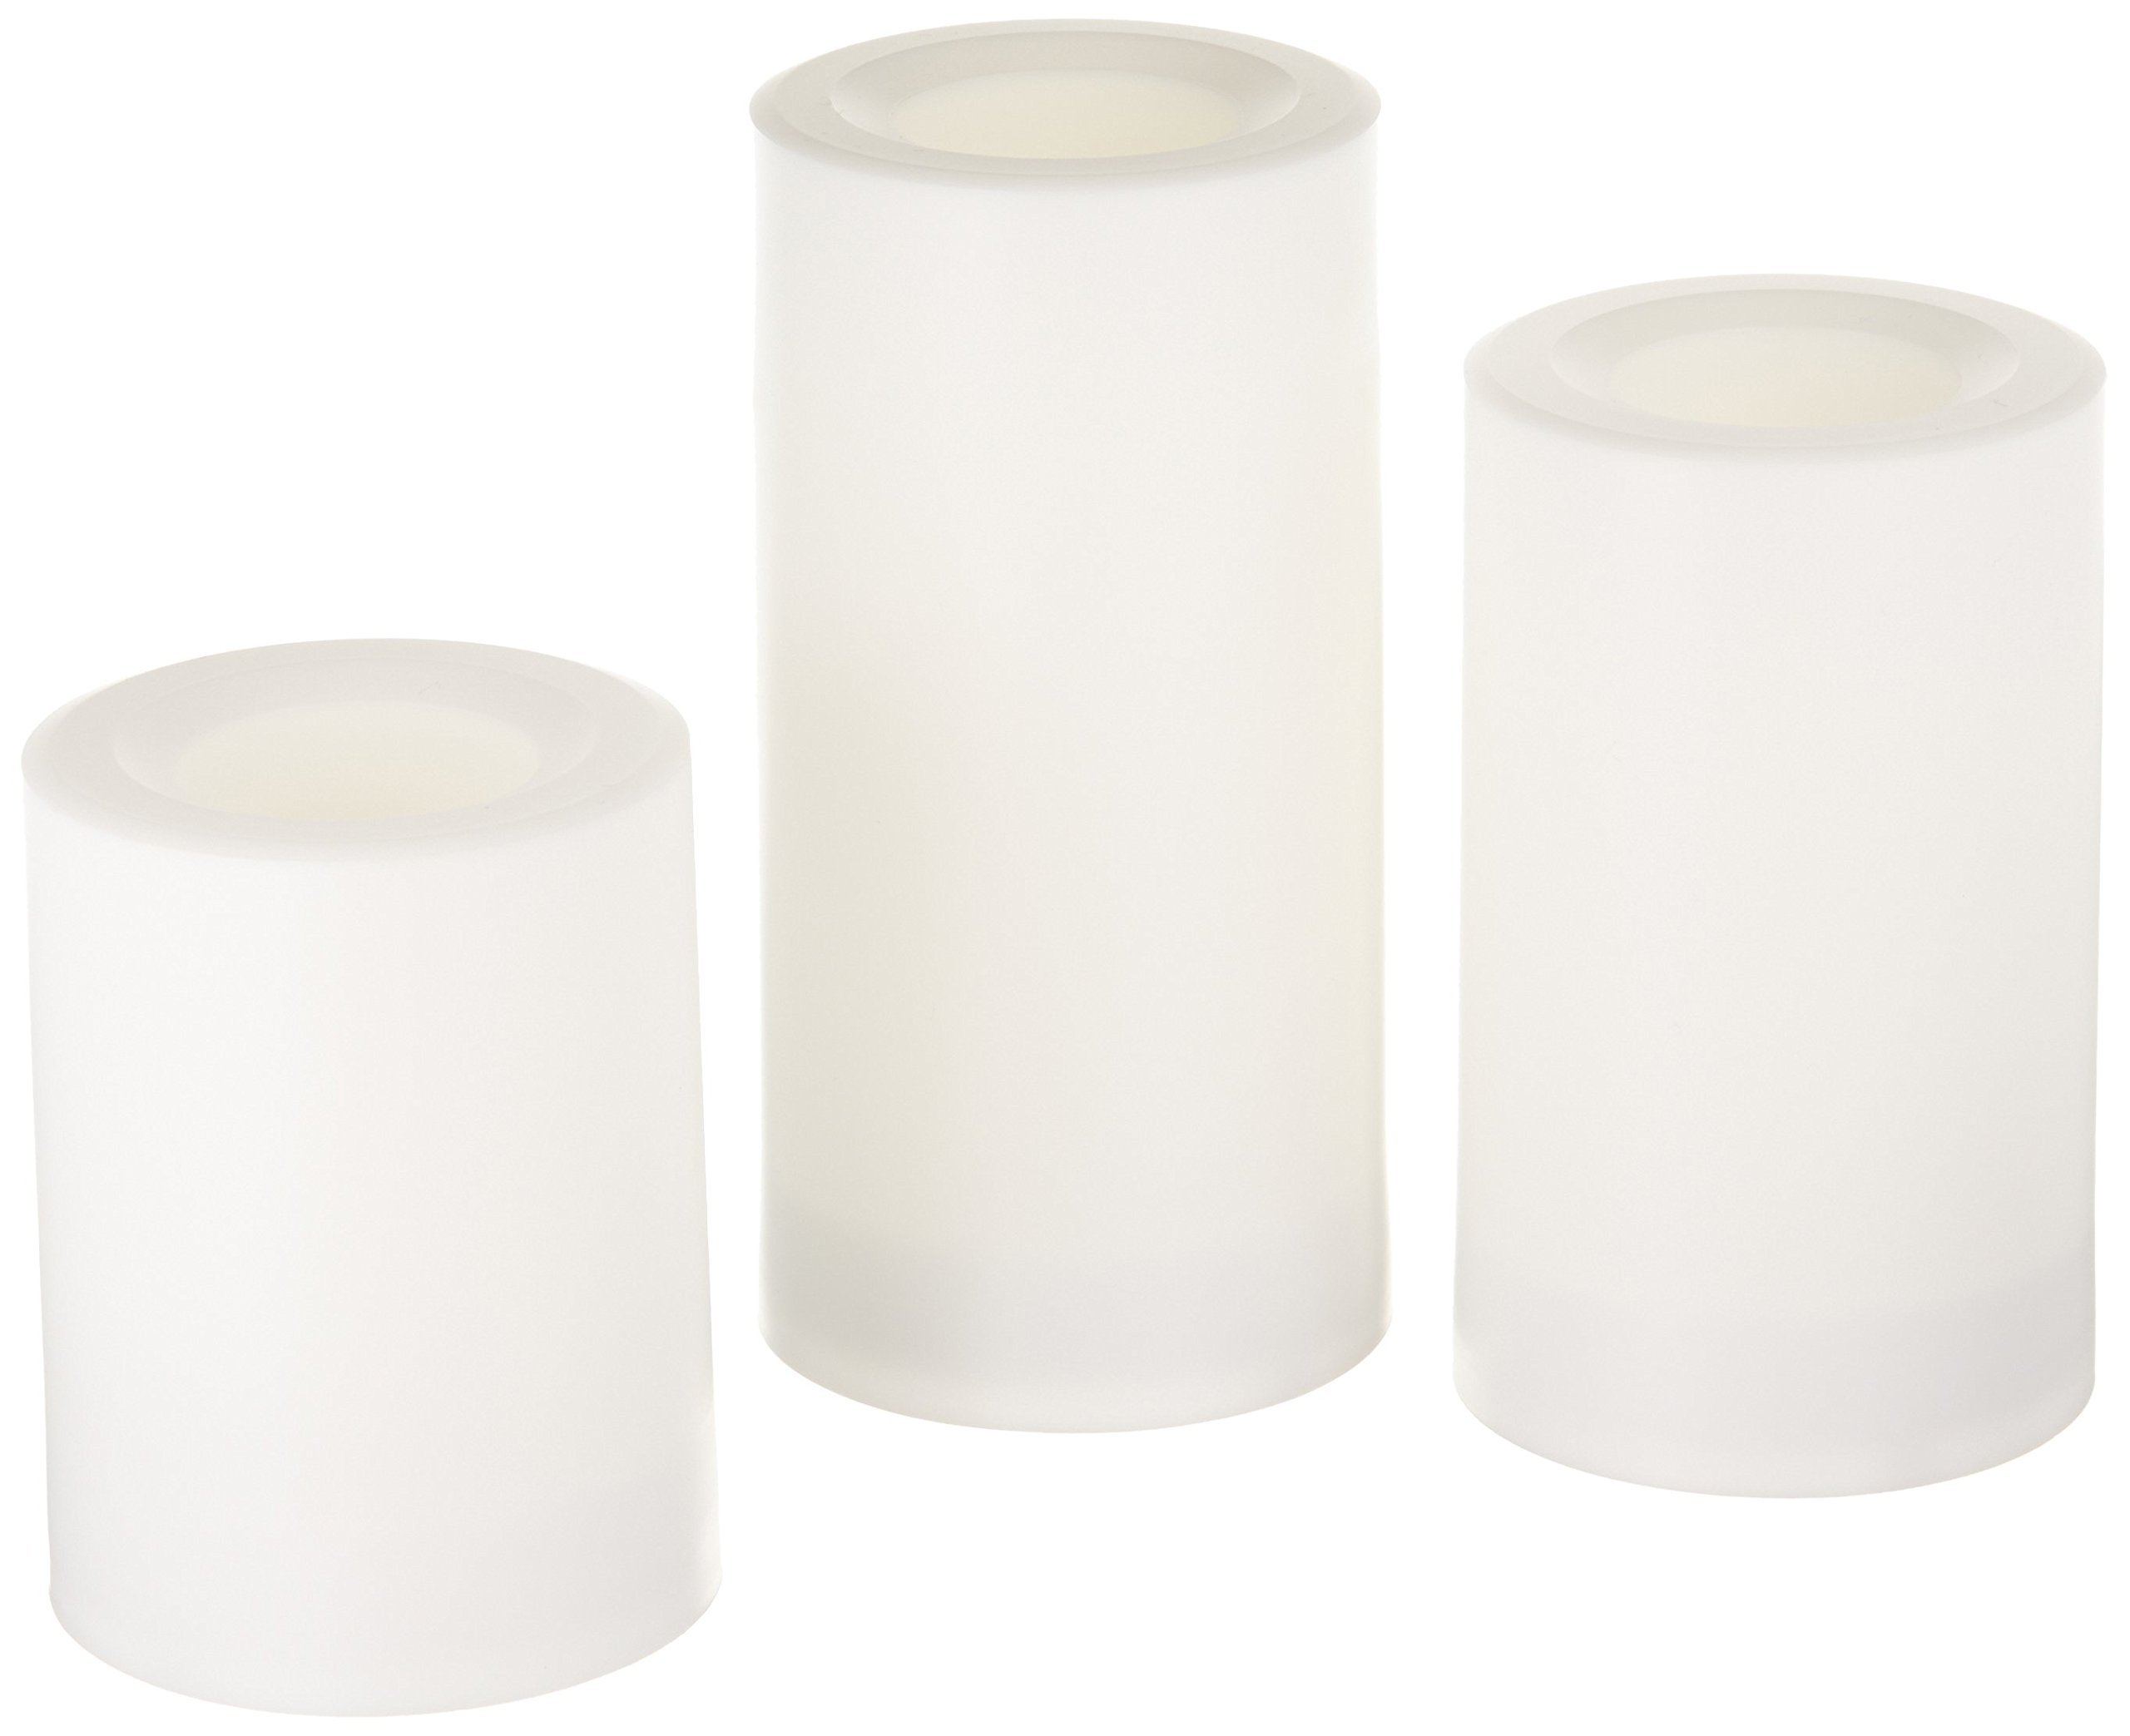 Inglow Flameless Round Outdoor Candles with Timer, White, Set of 3